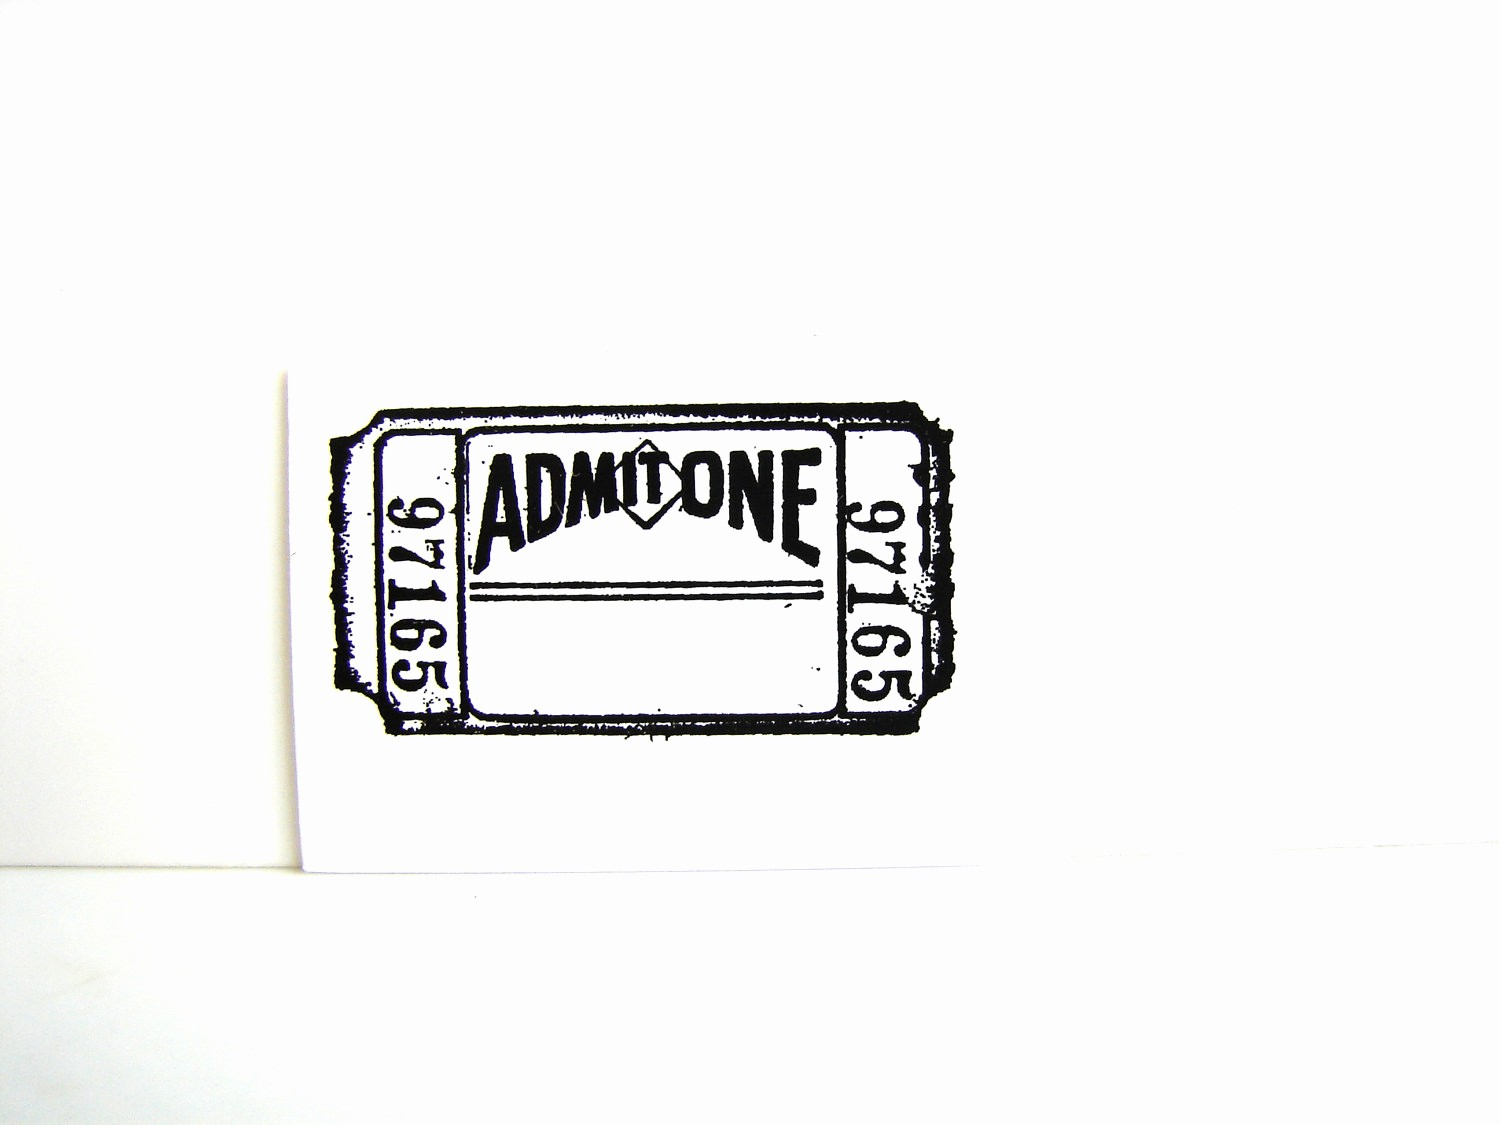 Blank Admit One Ticket Template Awesome 25 Of Blank Admit E Template